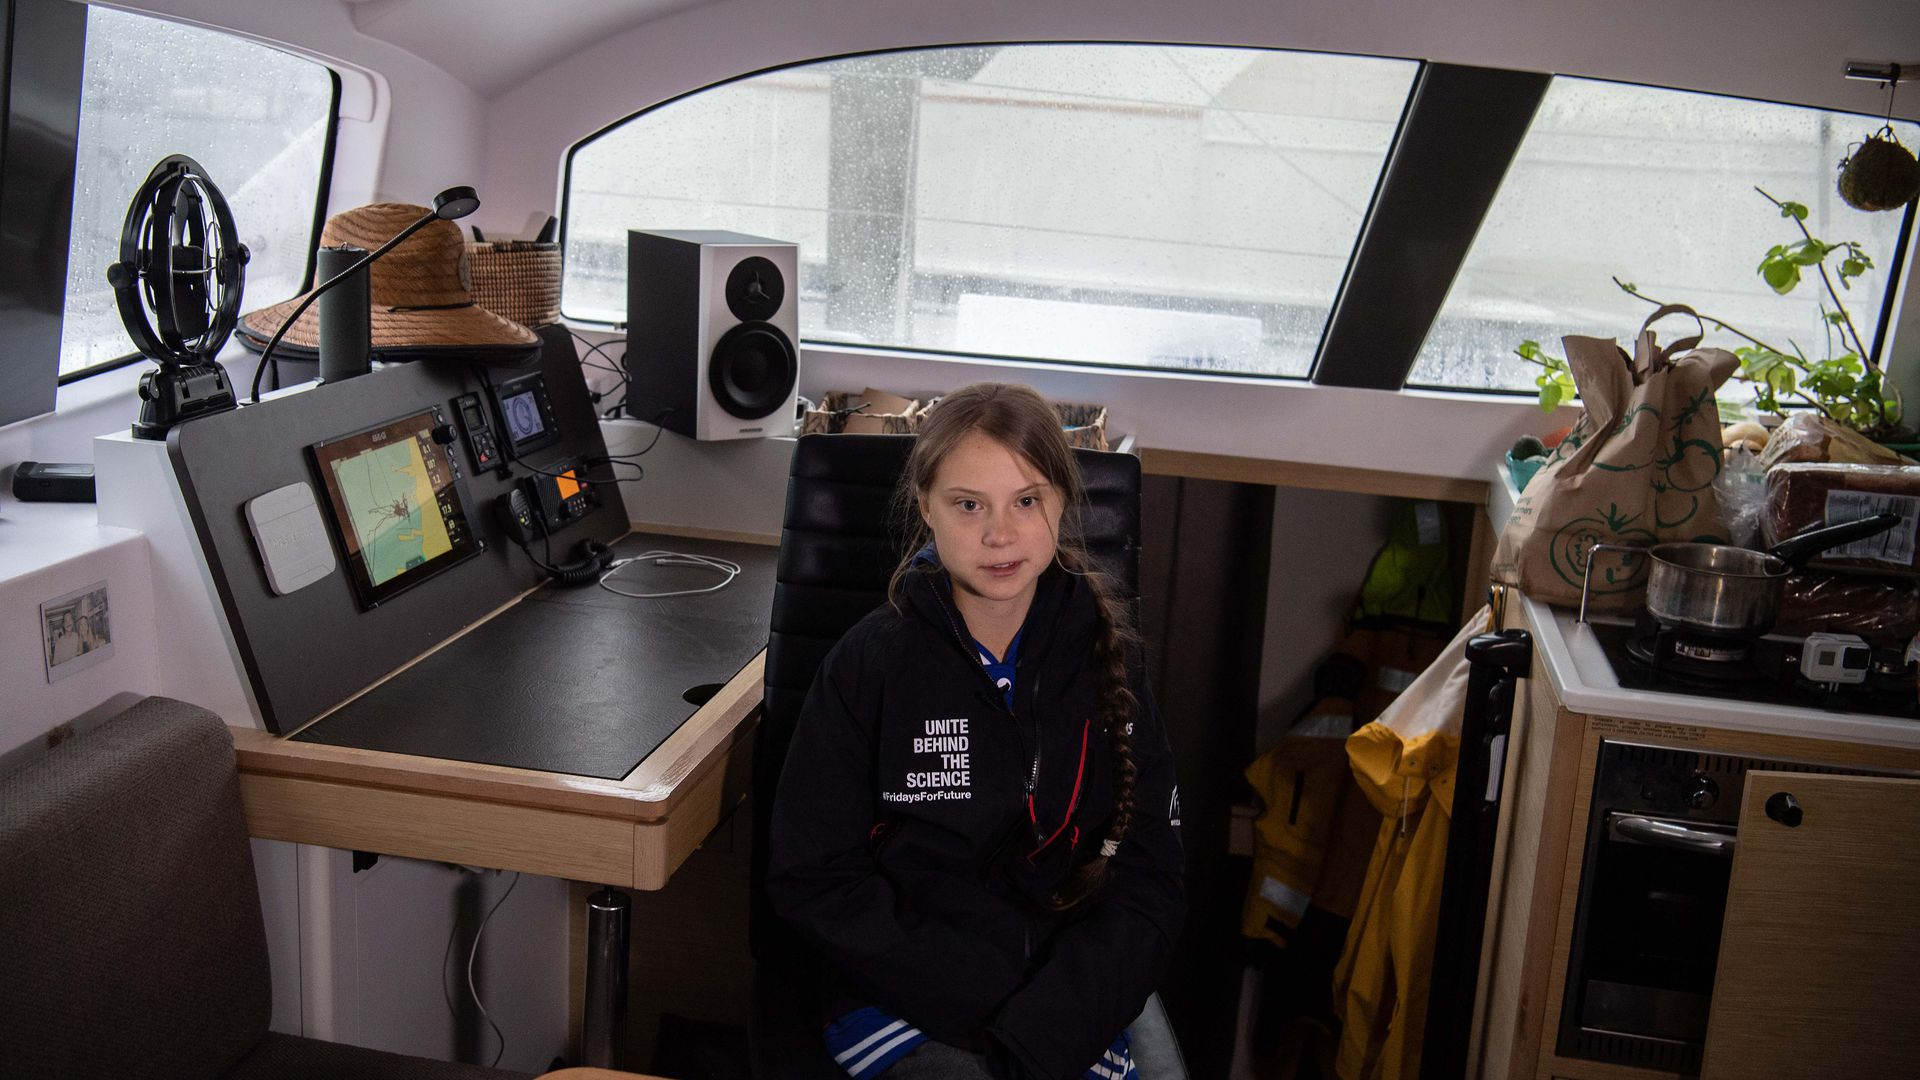 Greta Thunberg to set sail from U.S., bound for key UN climate summit in Spain